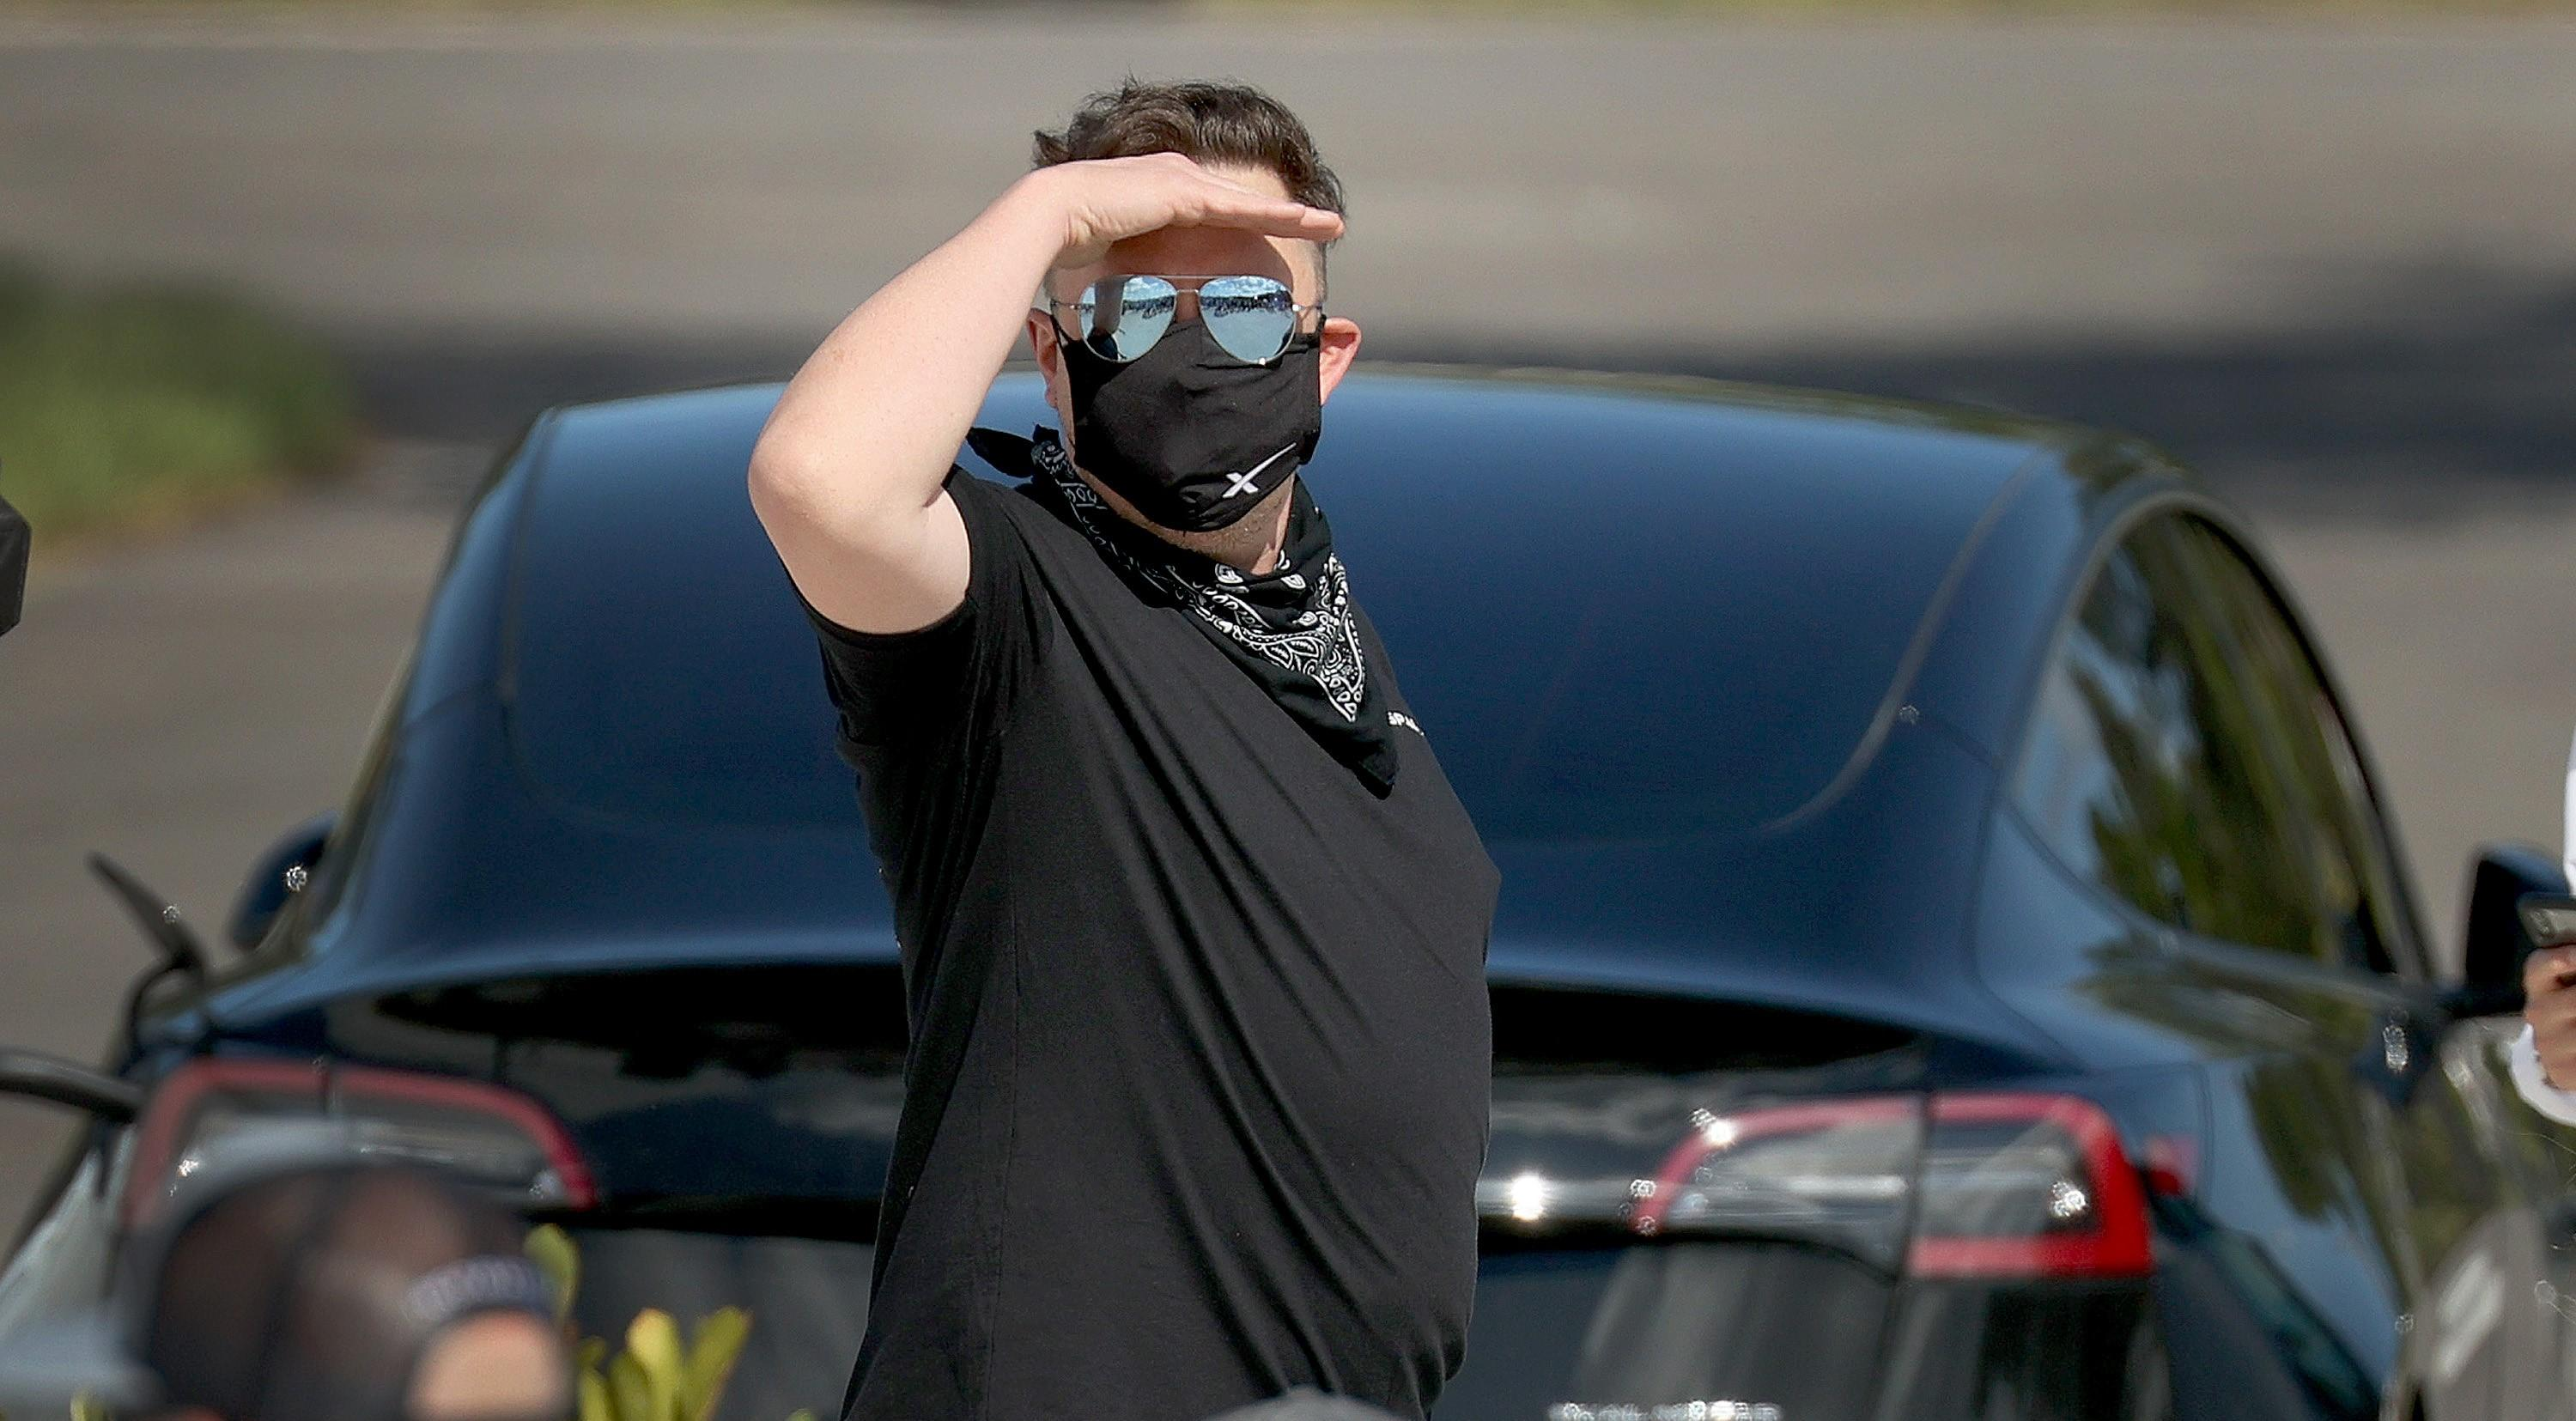 Elon Musk wearing glasses and mask